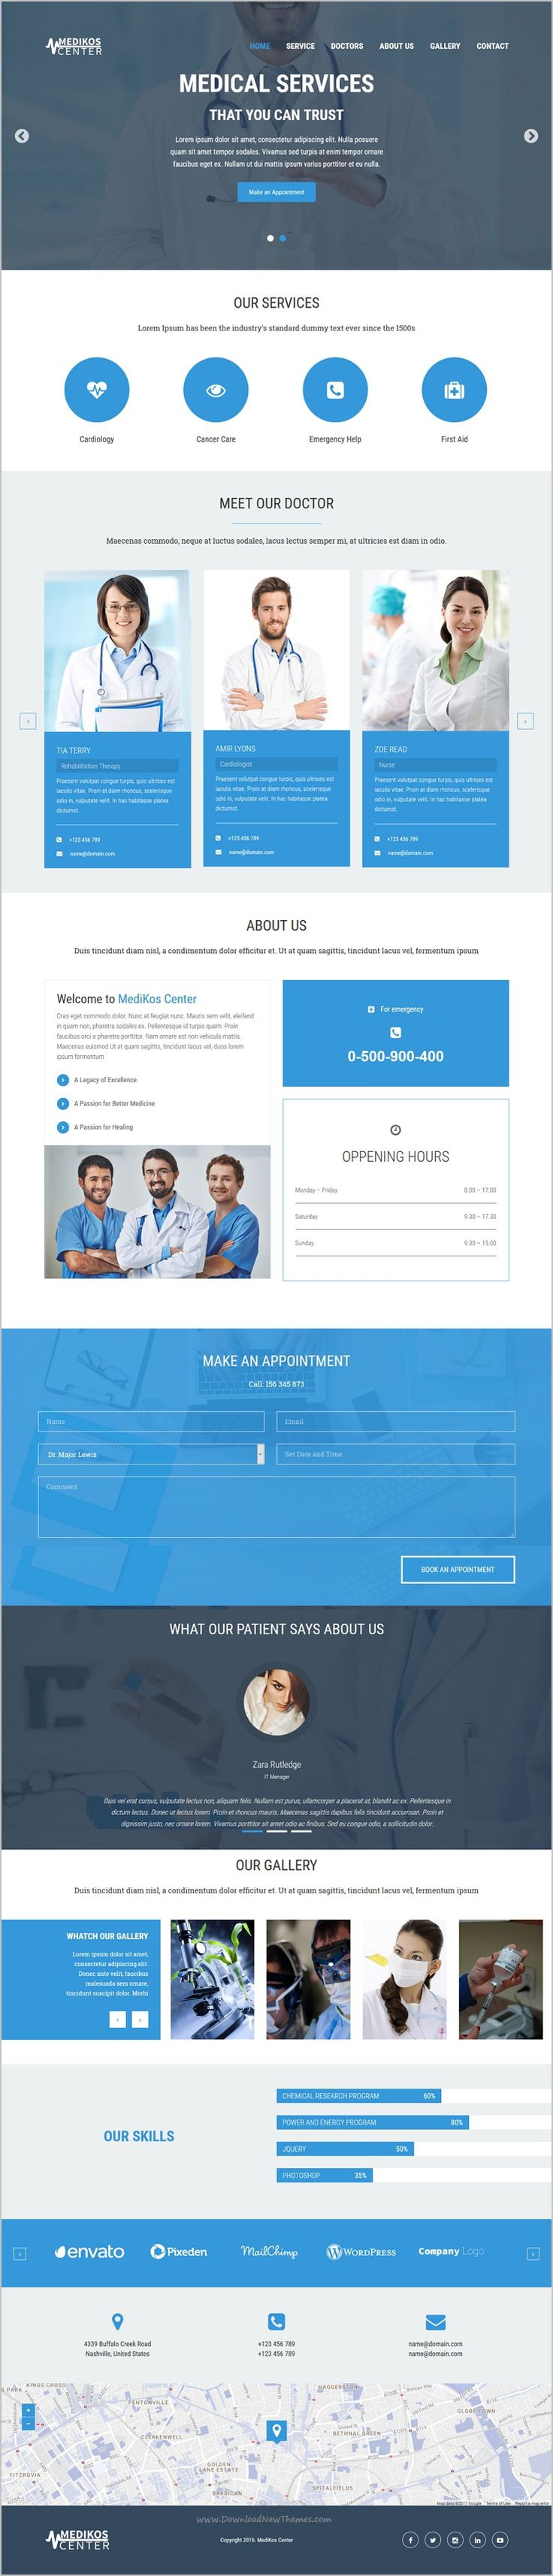 MediKos center is a wonderful responsive #HTML #Bootstrap template for perfect #medical and #healthcare landing page websites download now➩ https://themeforest.net/item/medikos-center-medical-and-health-html-landing-template/19245199?ref=Datasata